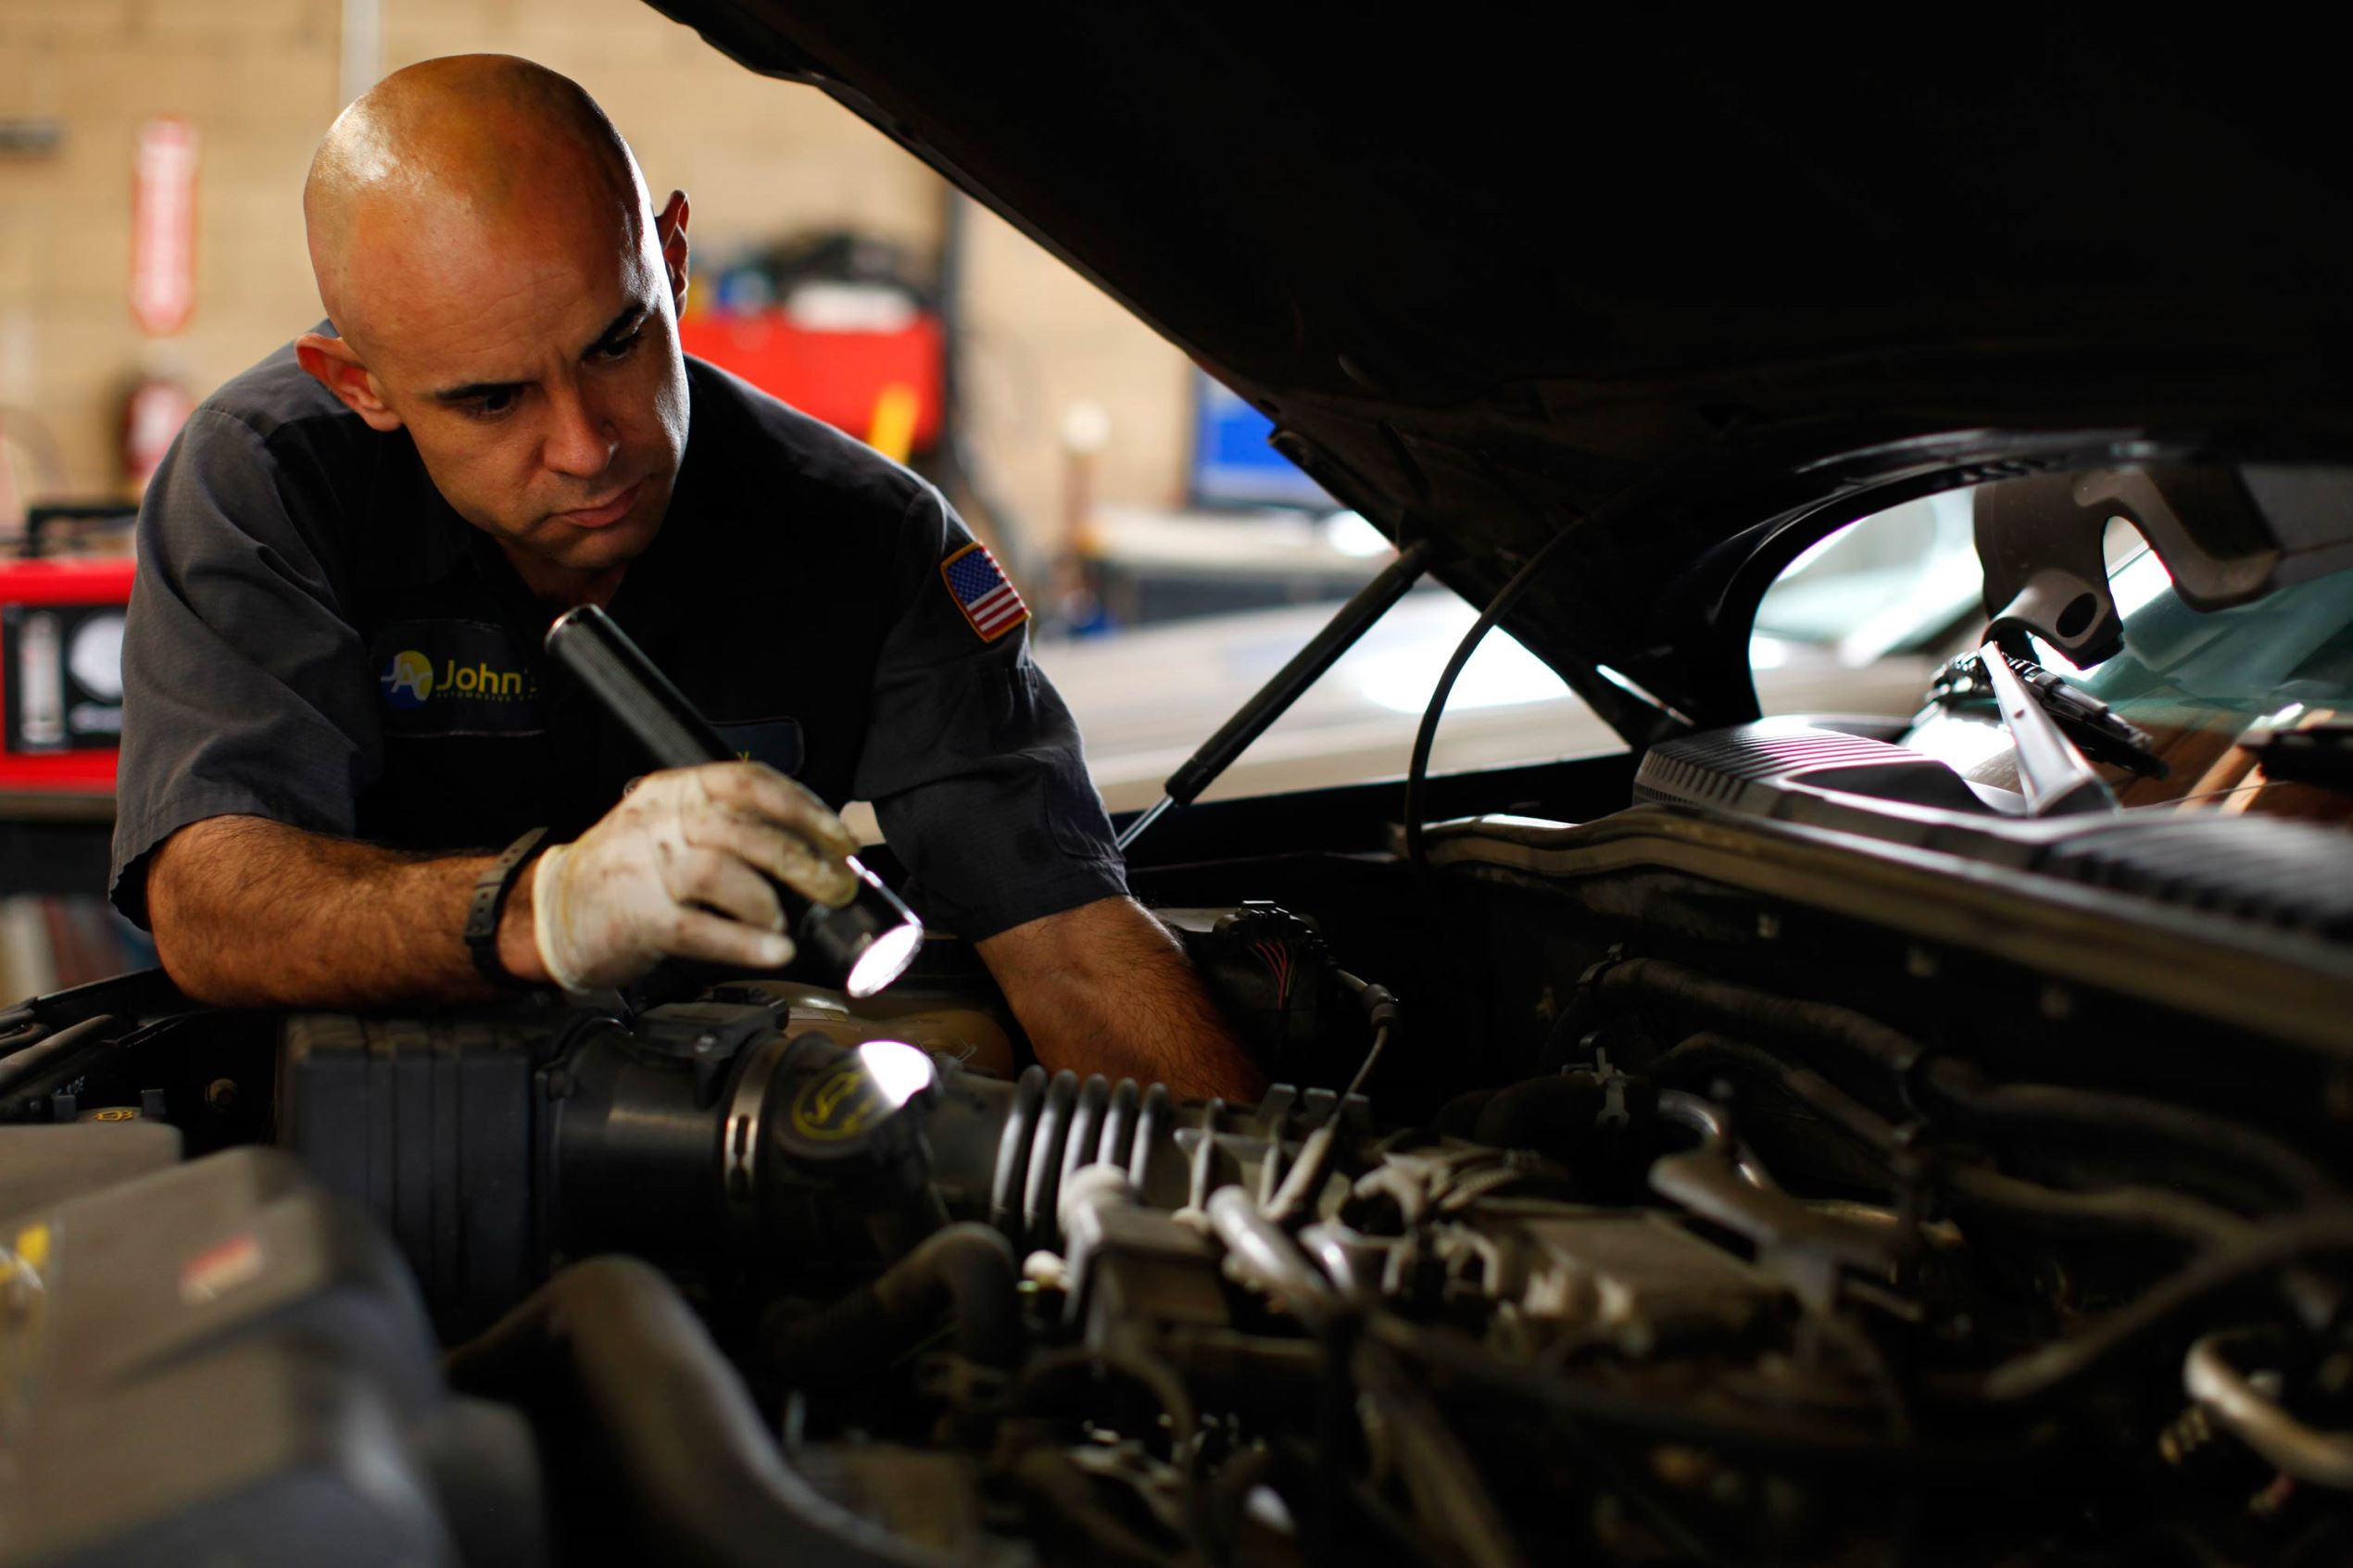 A car mechanic in San Diego, California.